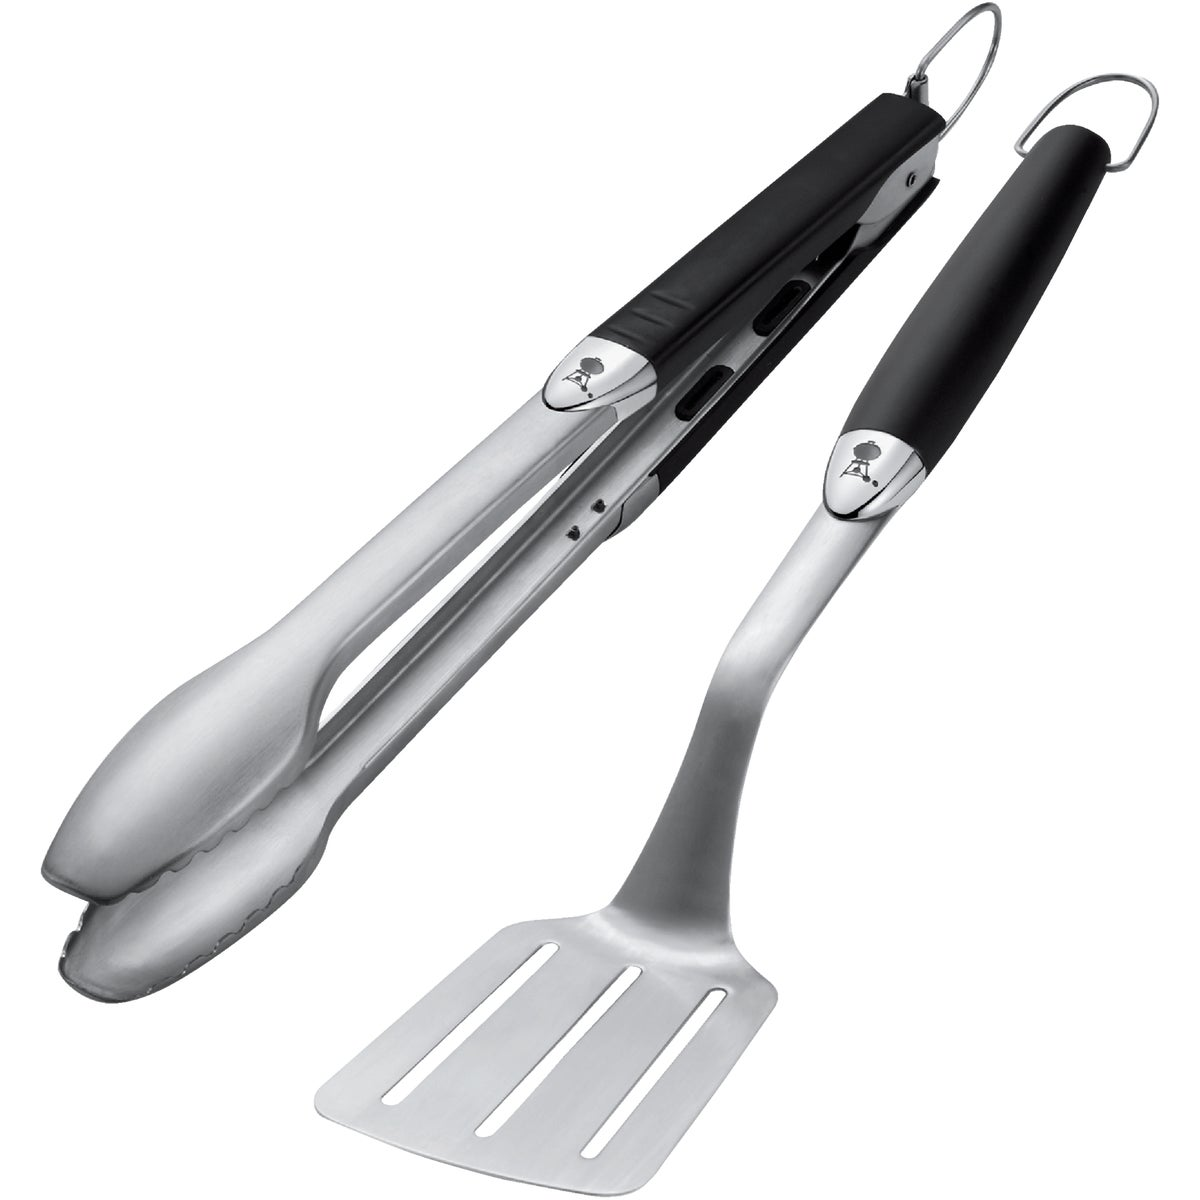 2PC SS TOOL SET - 6625 by Weber